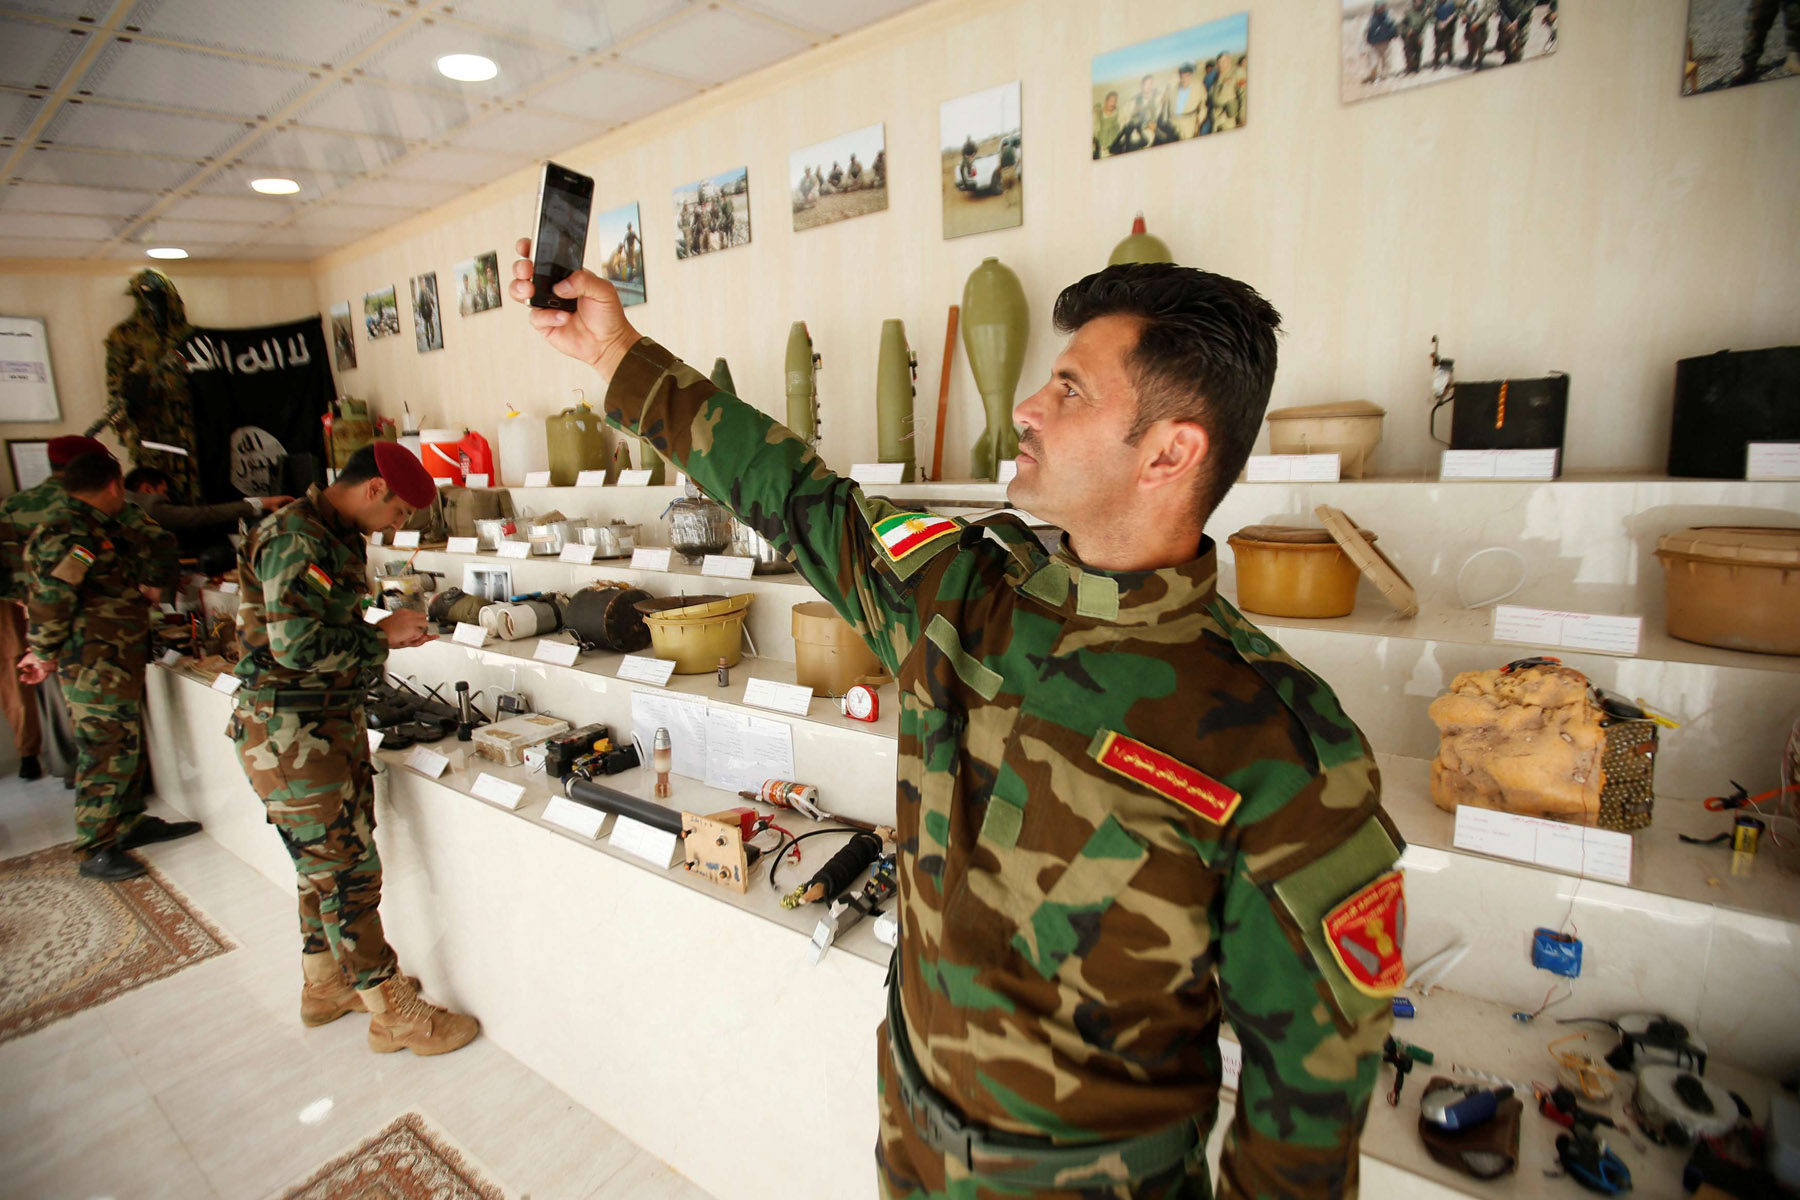 Unfinished history. A member of Kurdish Peshmerga military forces takes a selfie next to explosives and items that were used by ISIS militants, at a museum in Erbil. (Reuters)